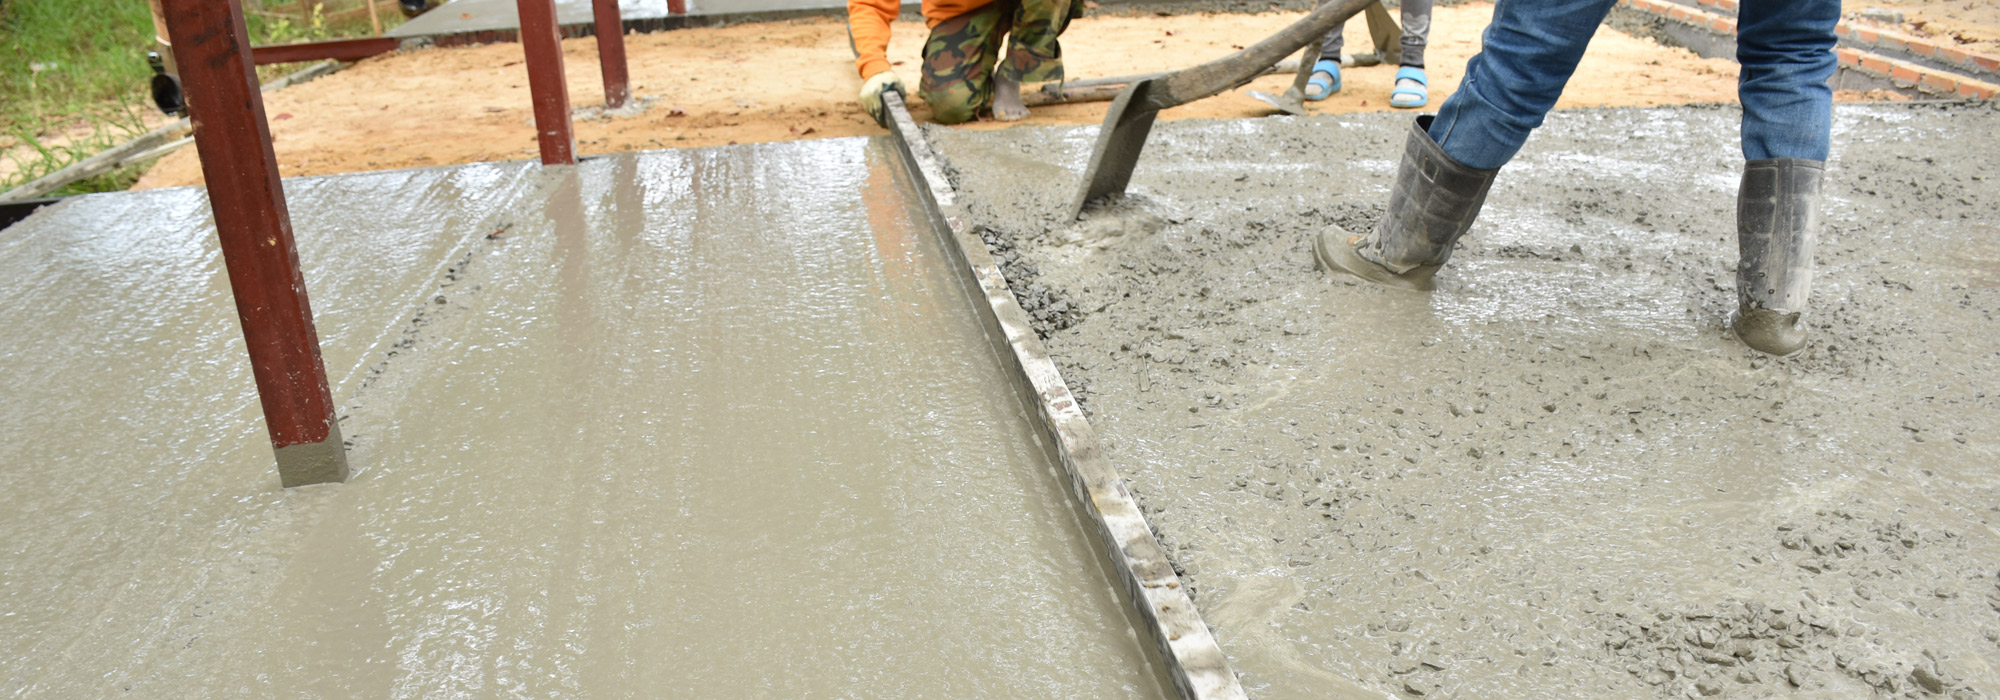 Concrete Pumping Jobs